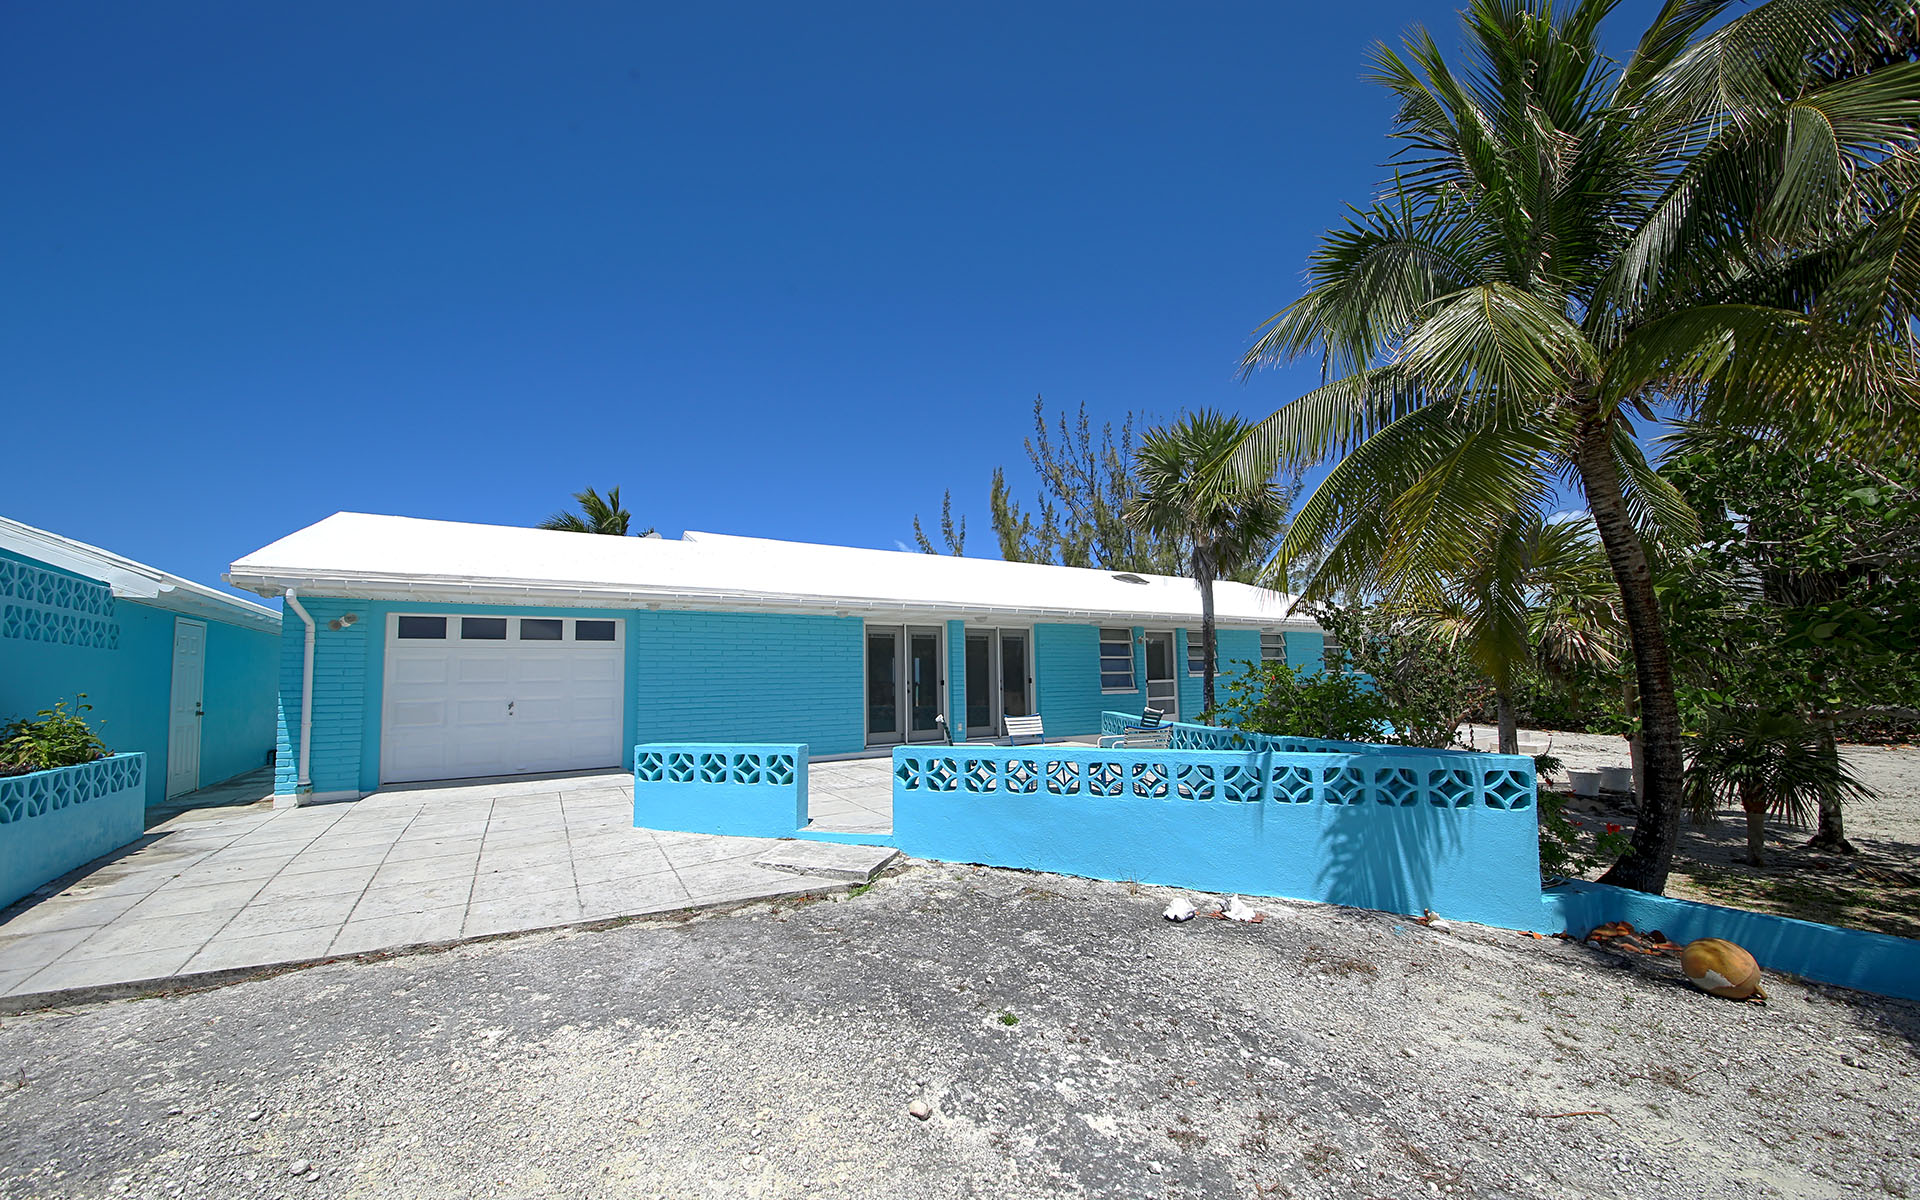 Casa Unifamiliar por un Venta en Cat Island beachfront home - MLS 29003 Cat Island, Bahamas